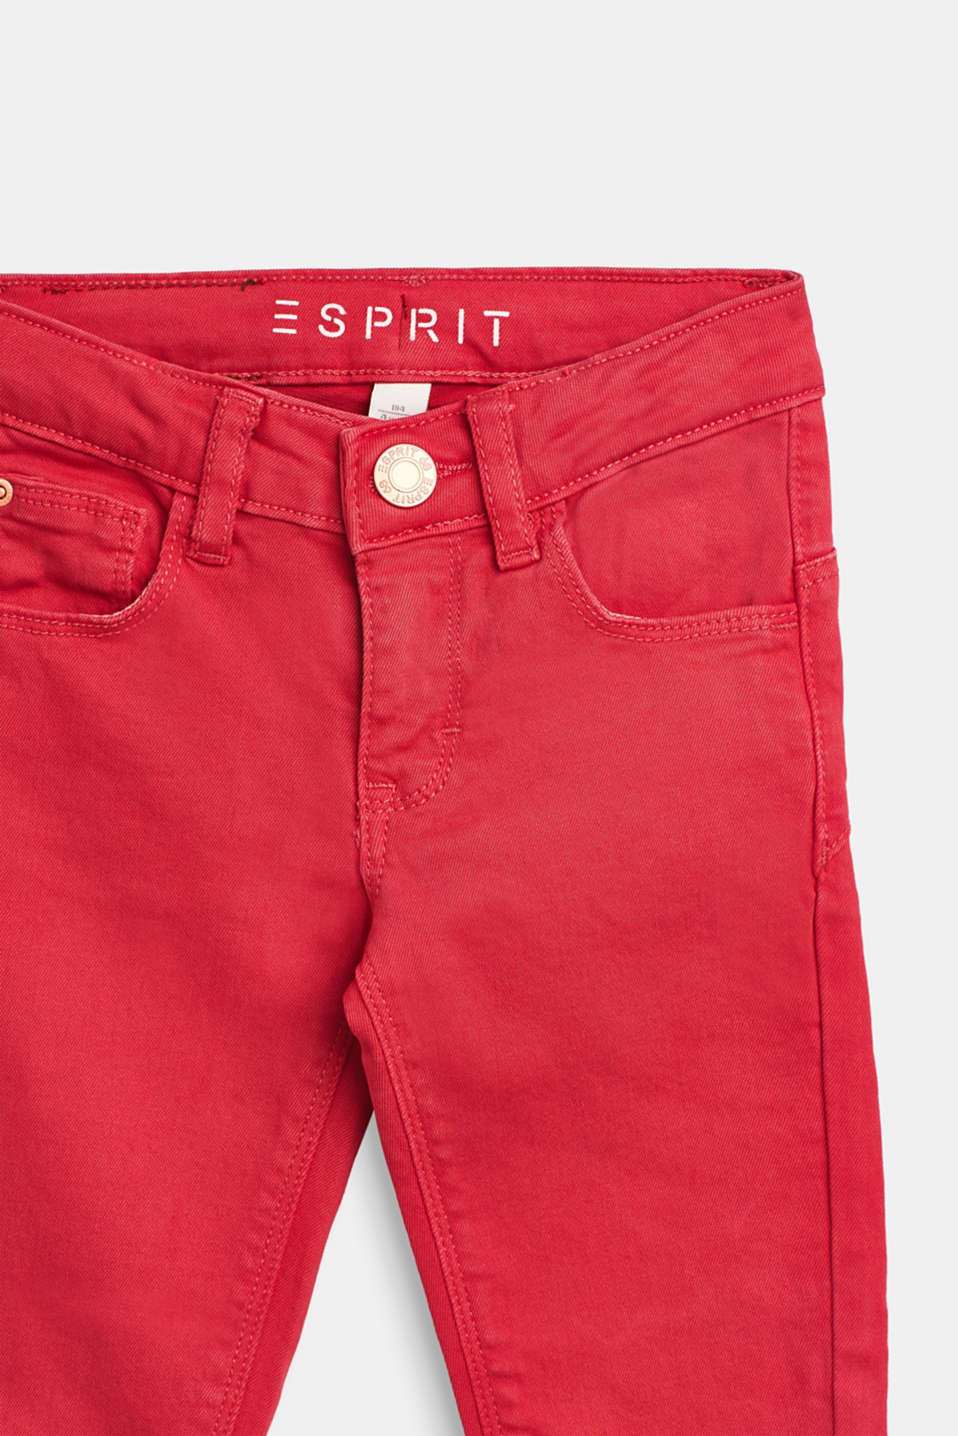 Stretch jeans in trend colours, WATERMELON, detail image number 2